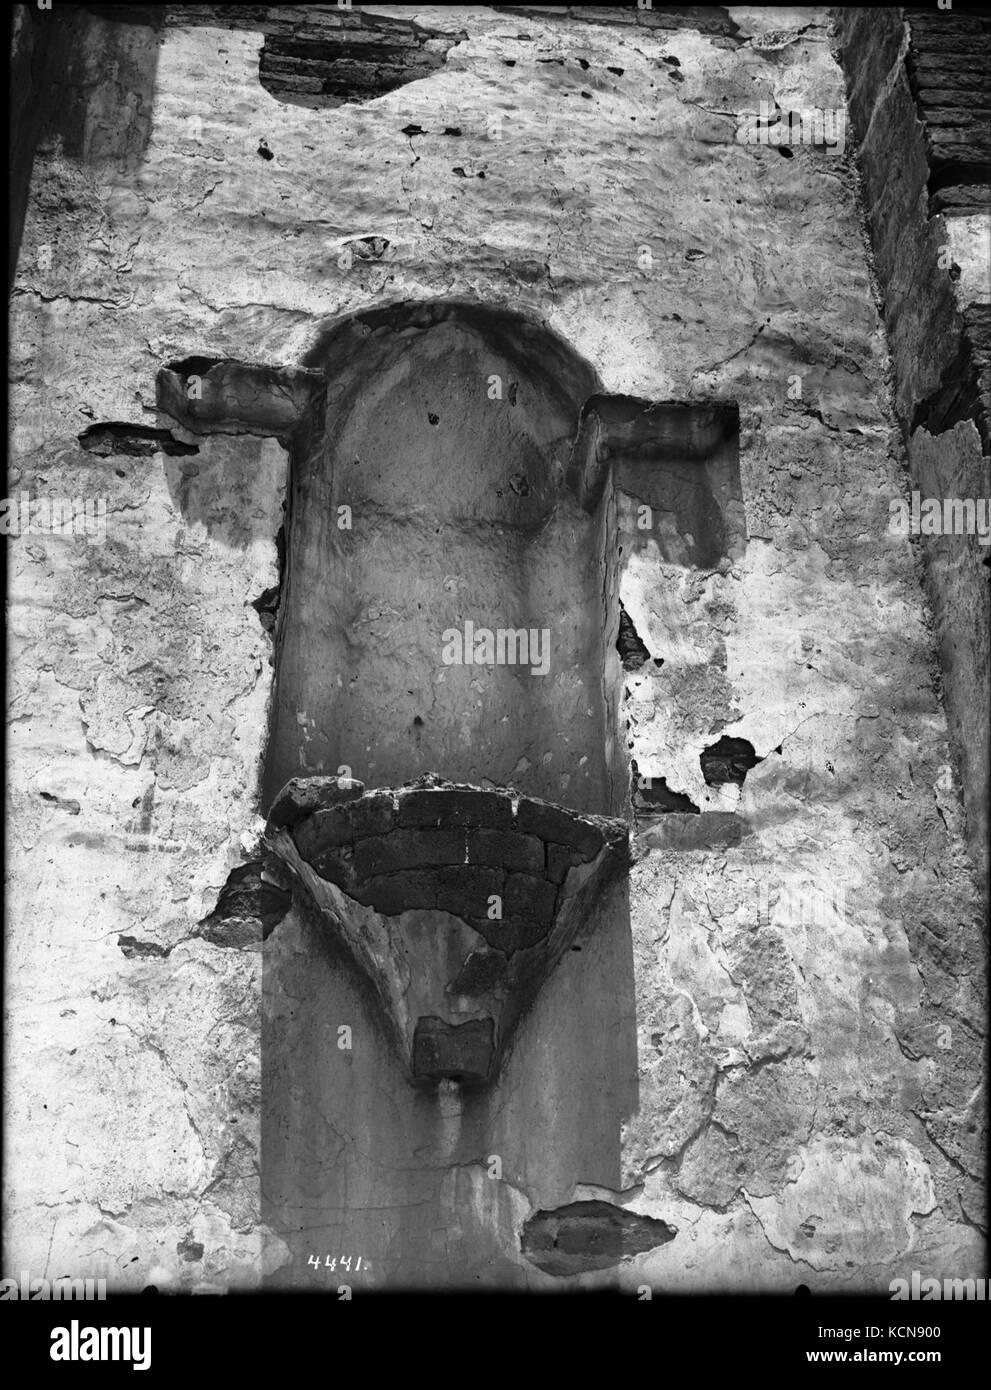 Bevelled brick used for support at Mission San Luis Rey de Francia, California, ca.1905 (CHS 4441) - Stock Image